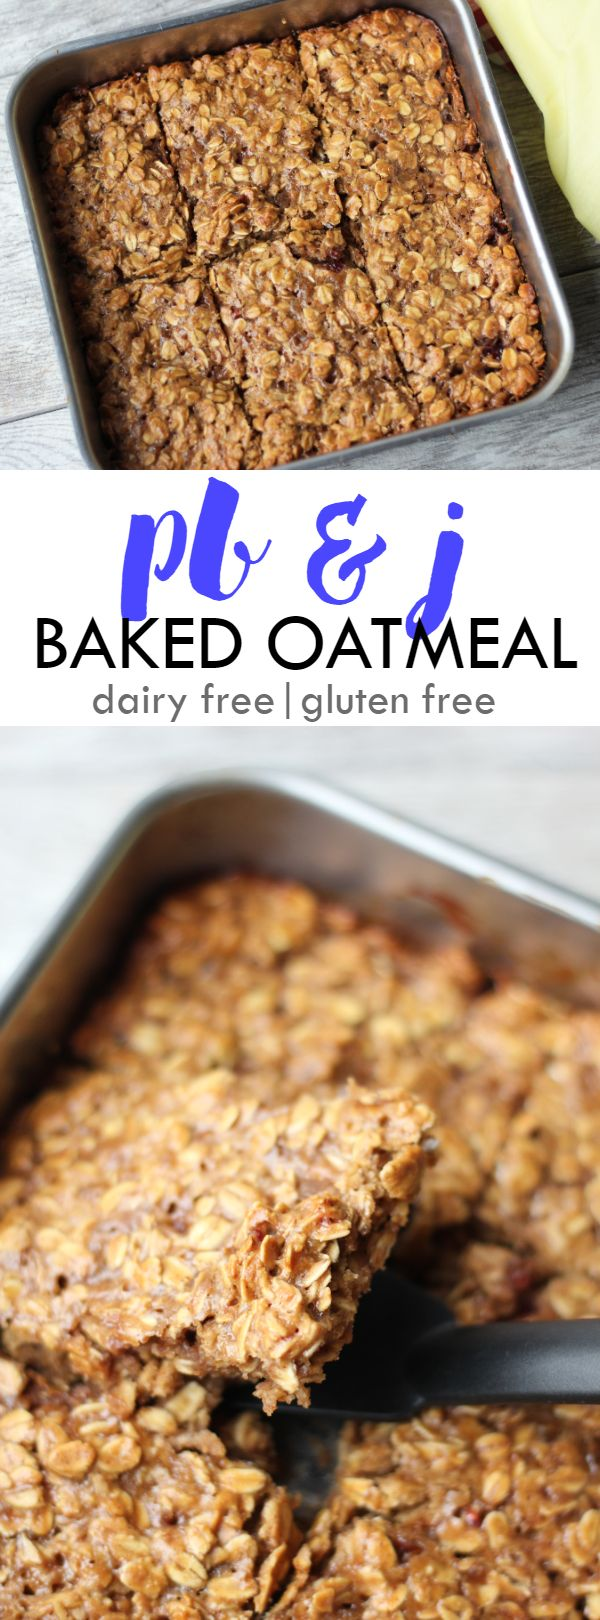 PB & J Baked Oatmeal - an easy to make grab-and-go breakfast! | Lean, Clean, & Brie